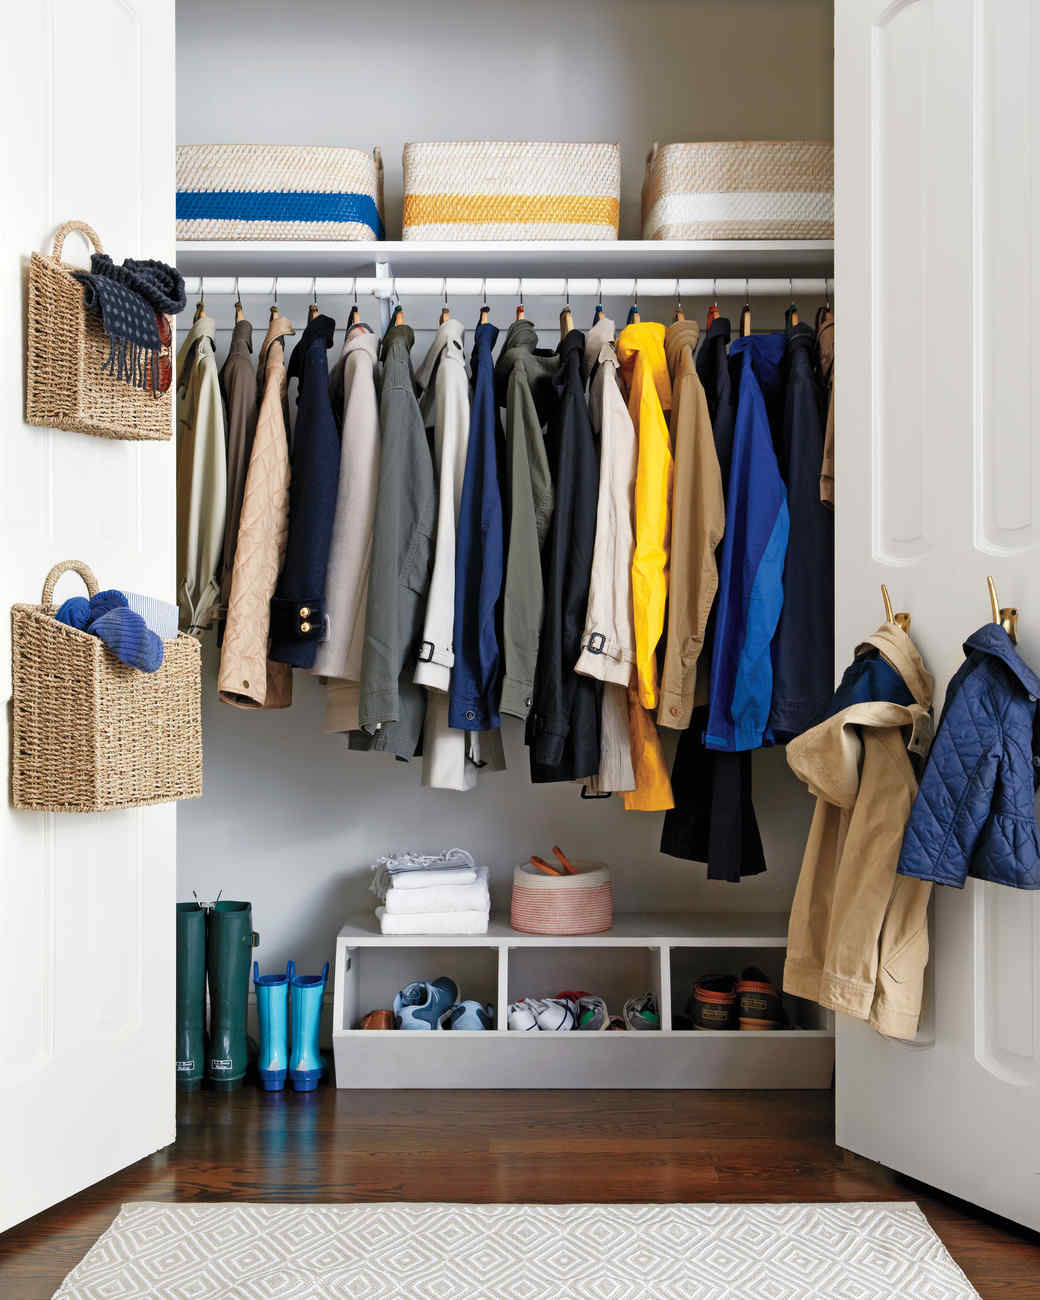 Merveilleux Easy Steps To Organize The Coat Closet